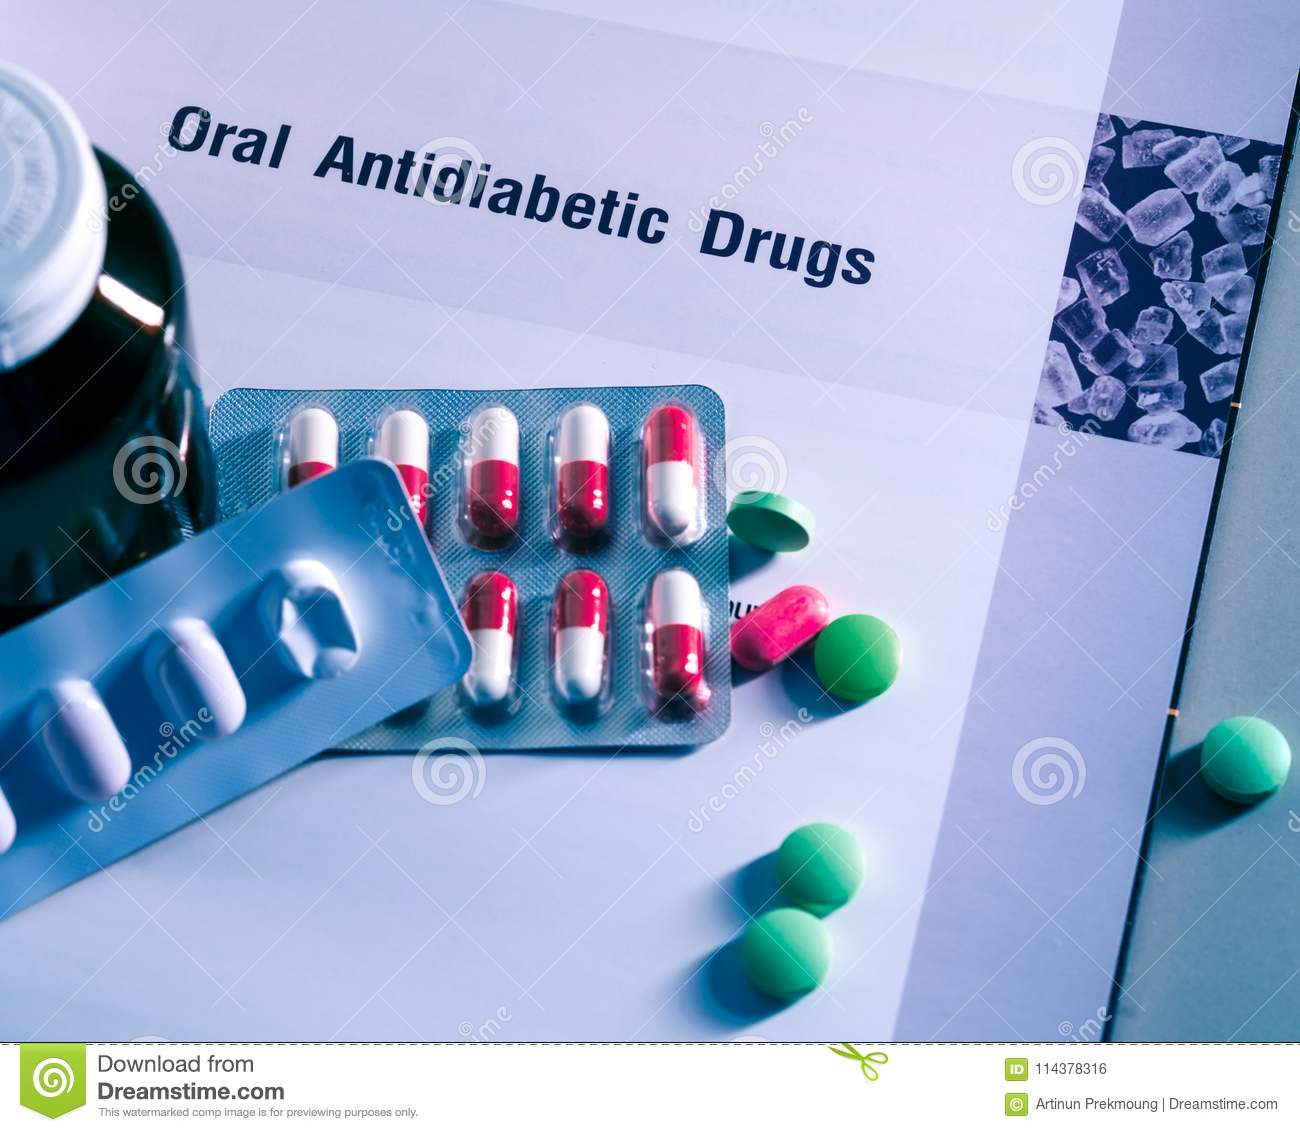 Diabetes drugs in packs and and medicine bottle placed on textbook. Green tablets and pink-white capsule pills. Diabetes mellitus